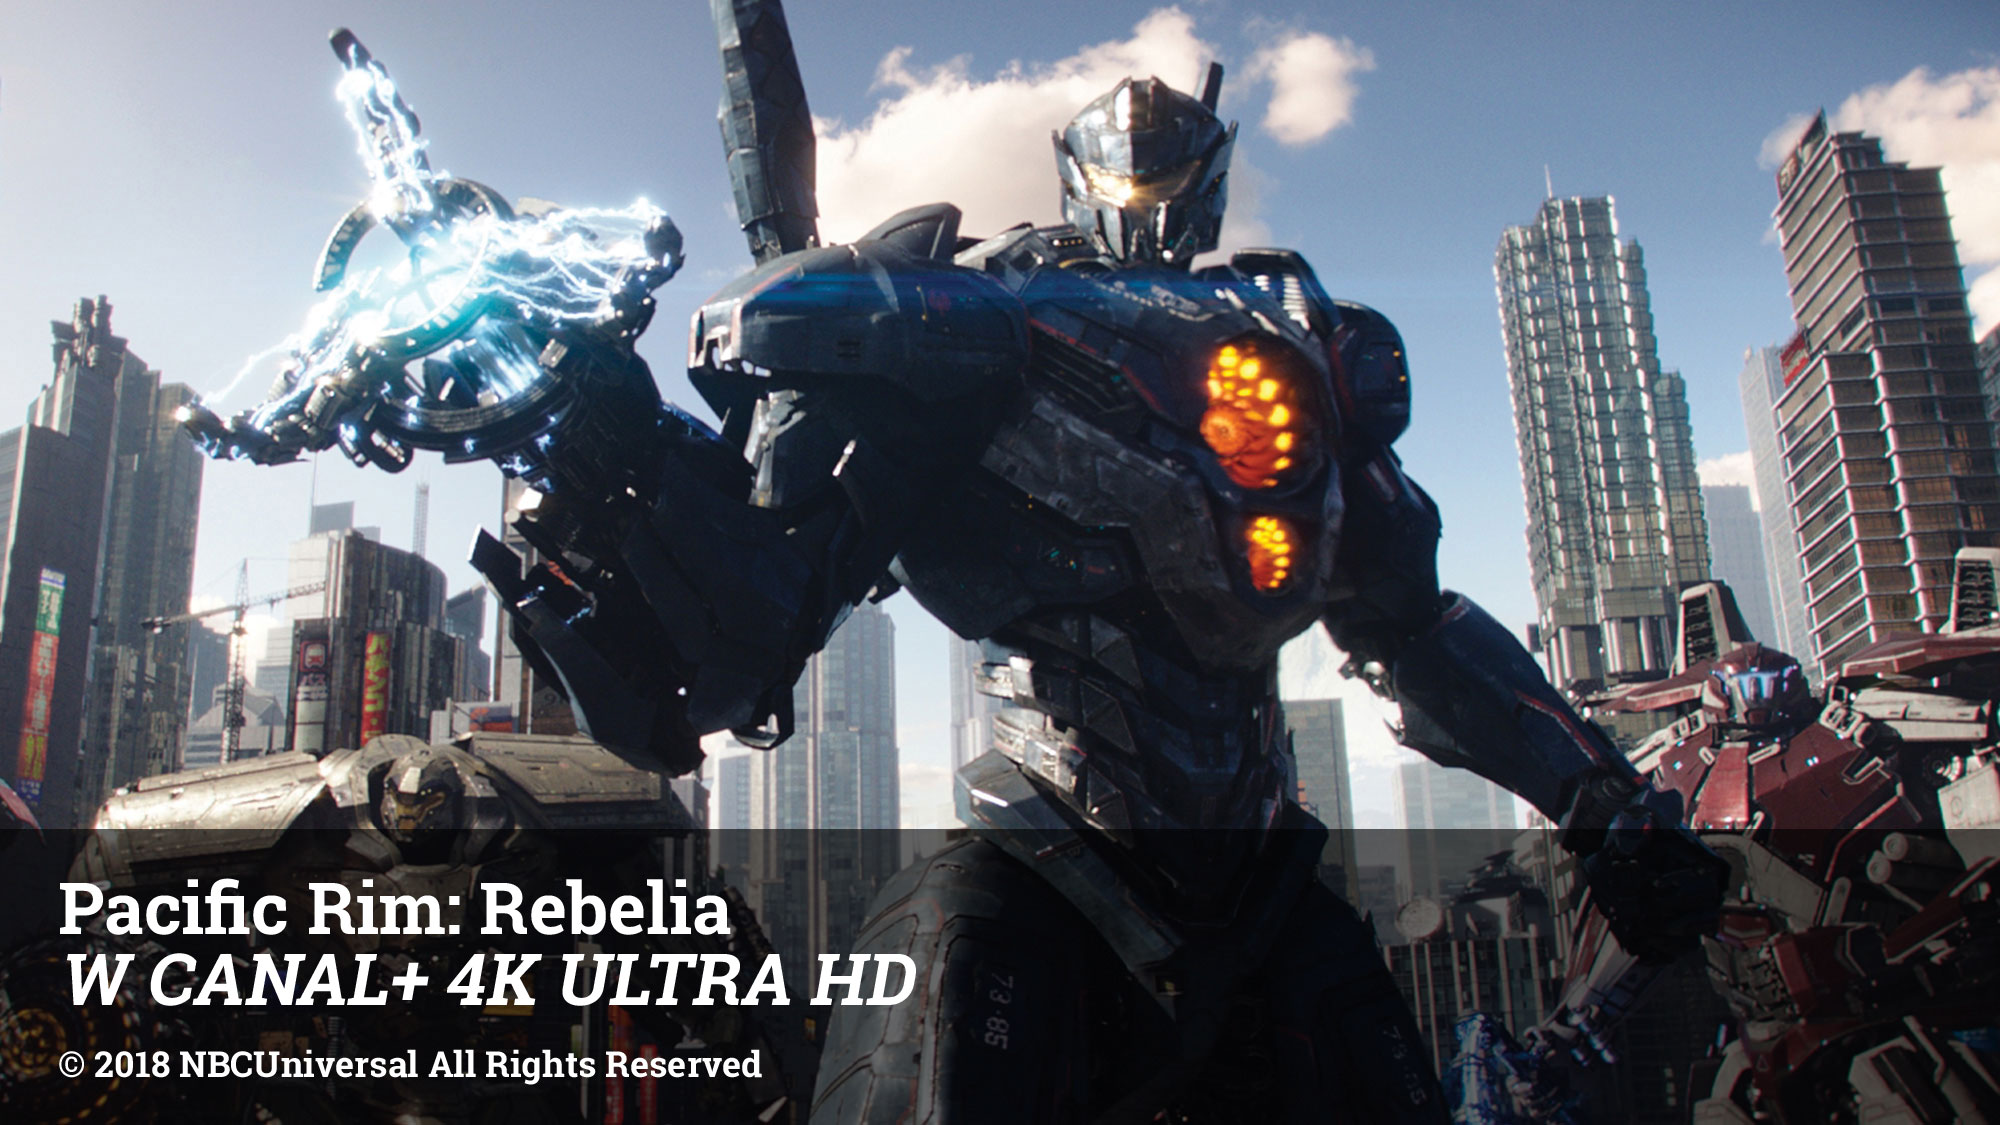 Pacific Rim: Rebelia W CANAL+ 4K ULTRA HD